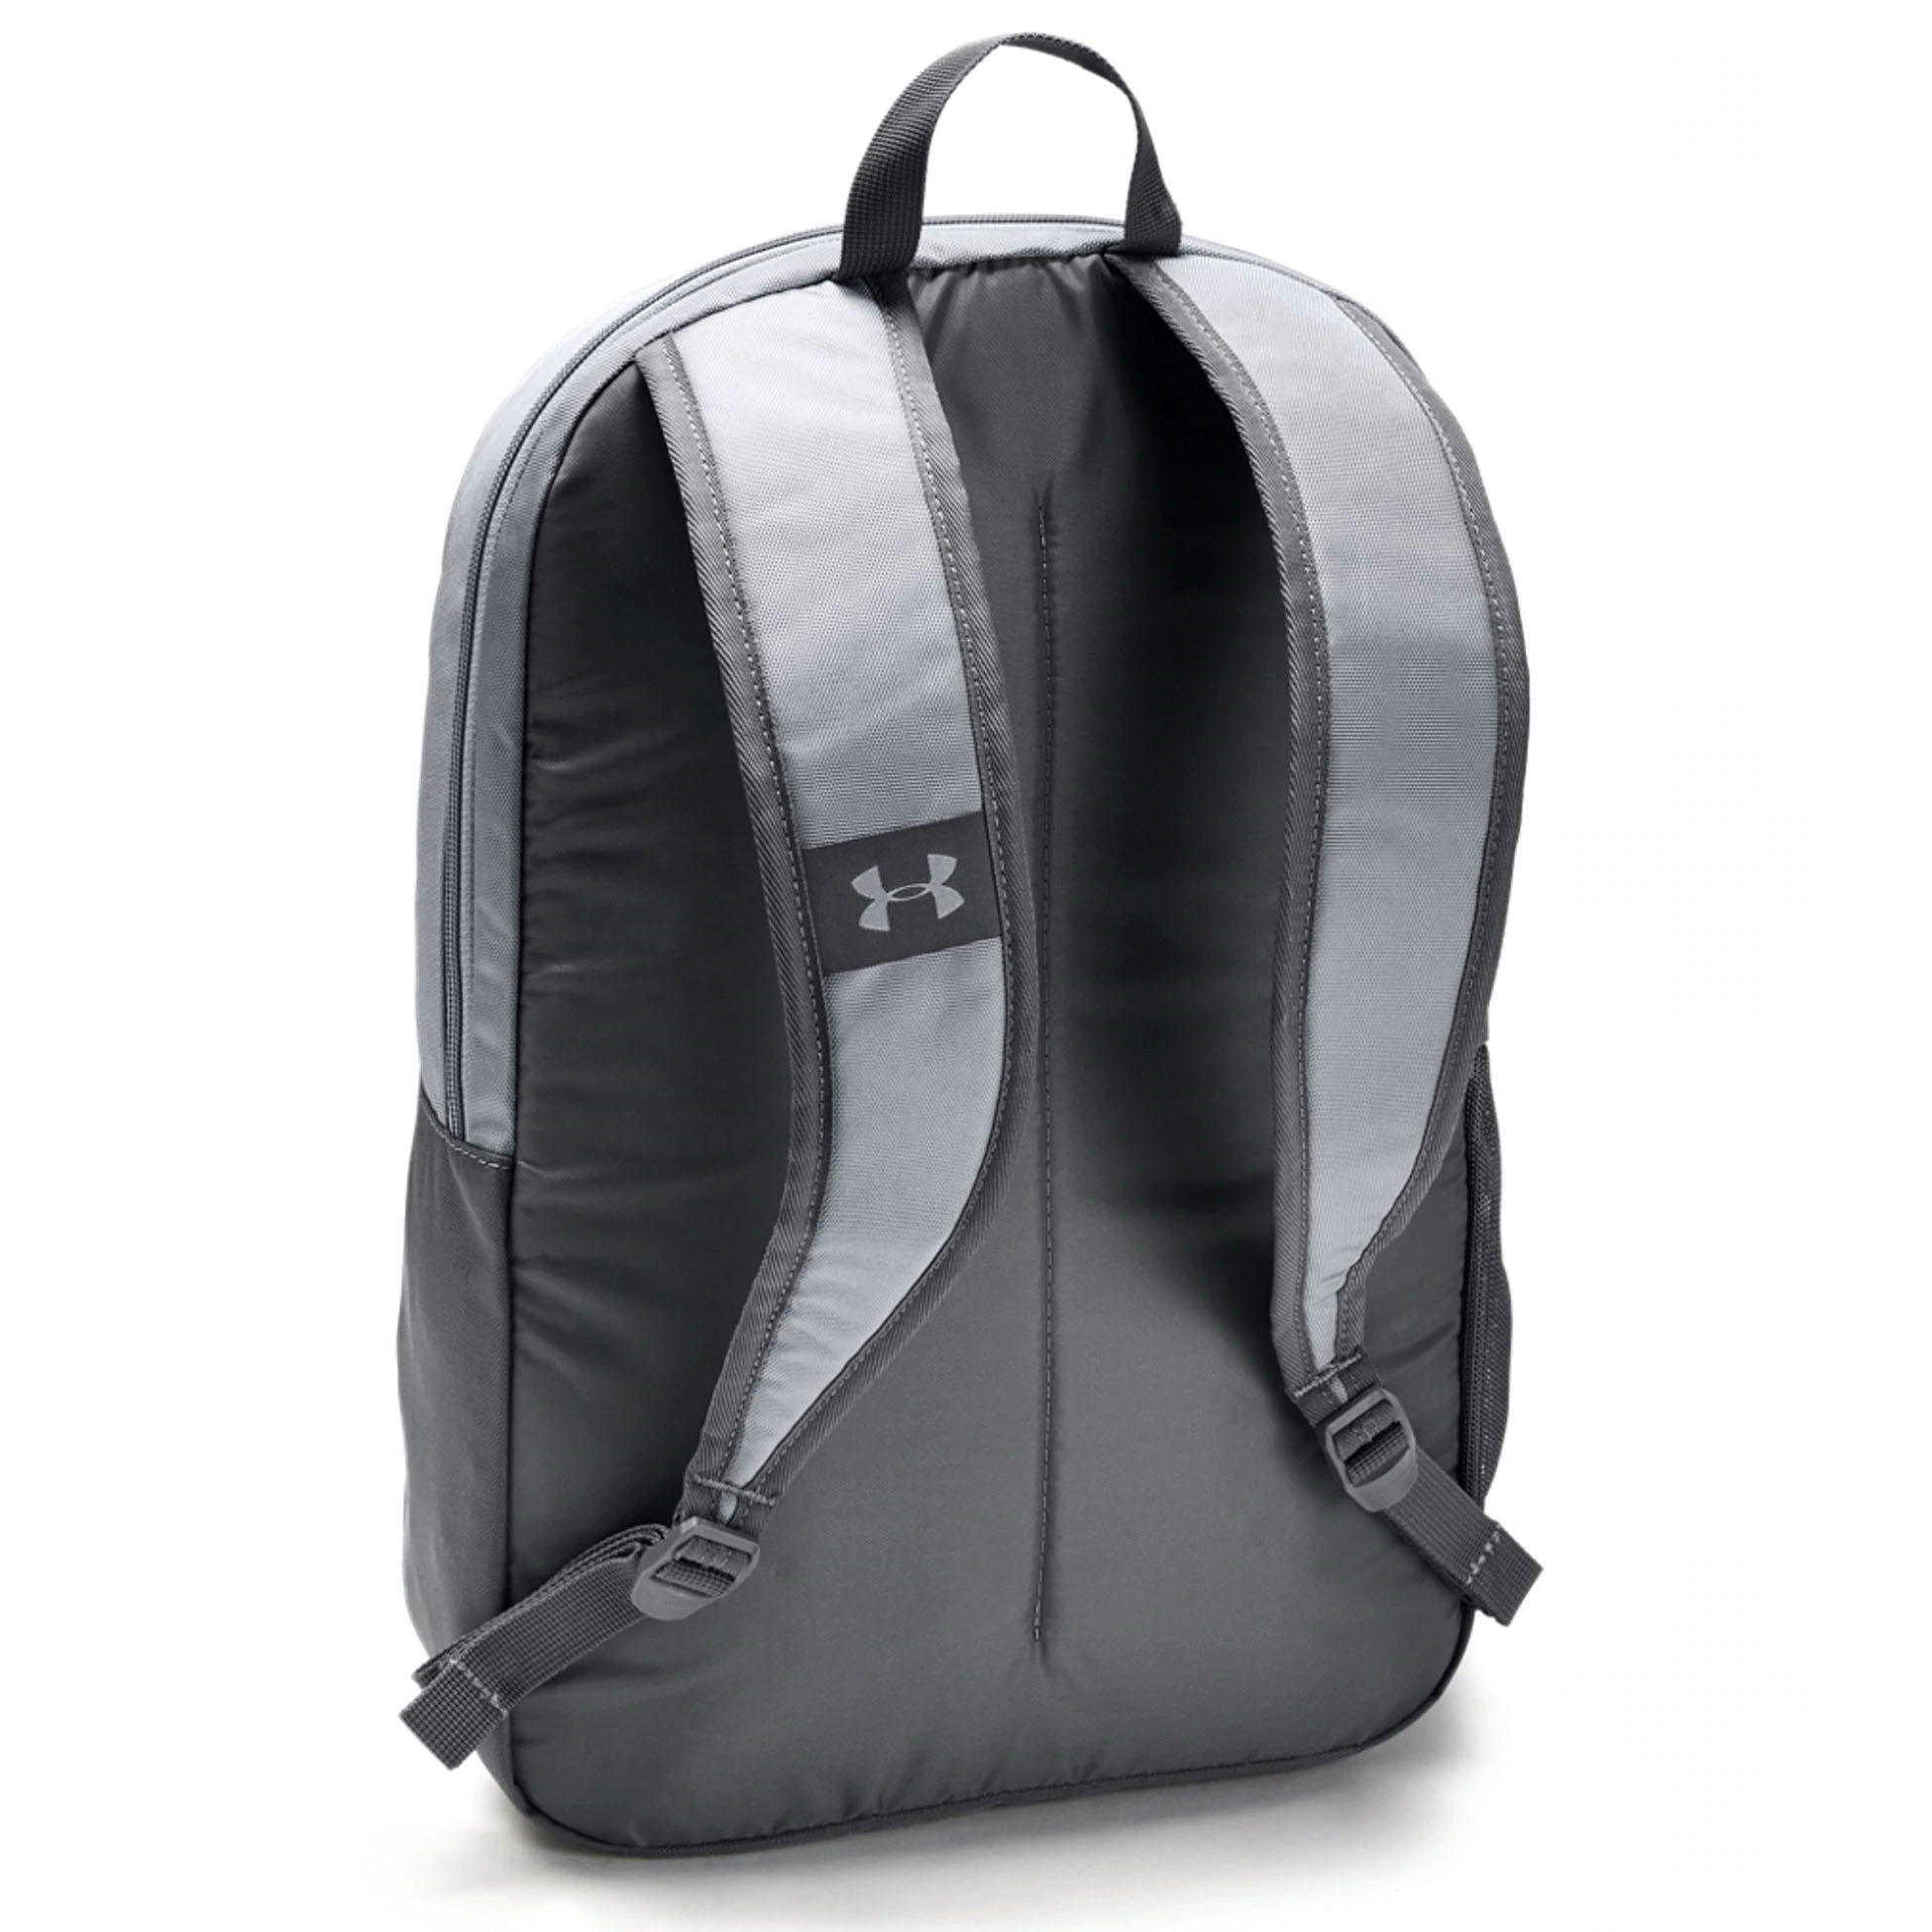 Details about Under Armour Project 5 Backpack Rucksack Sports Bag Grey ee892069619fb